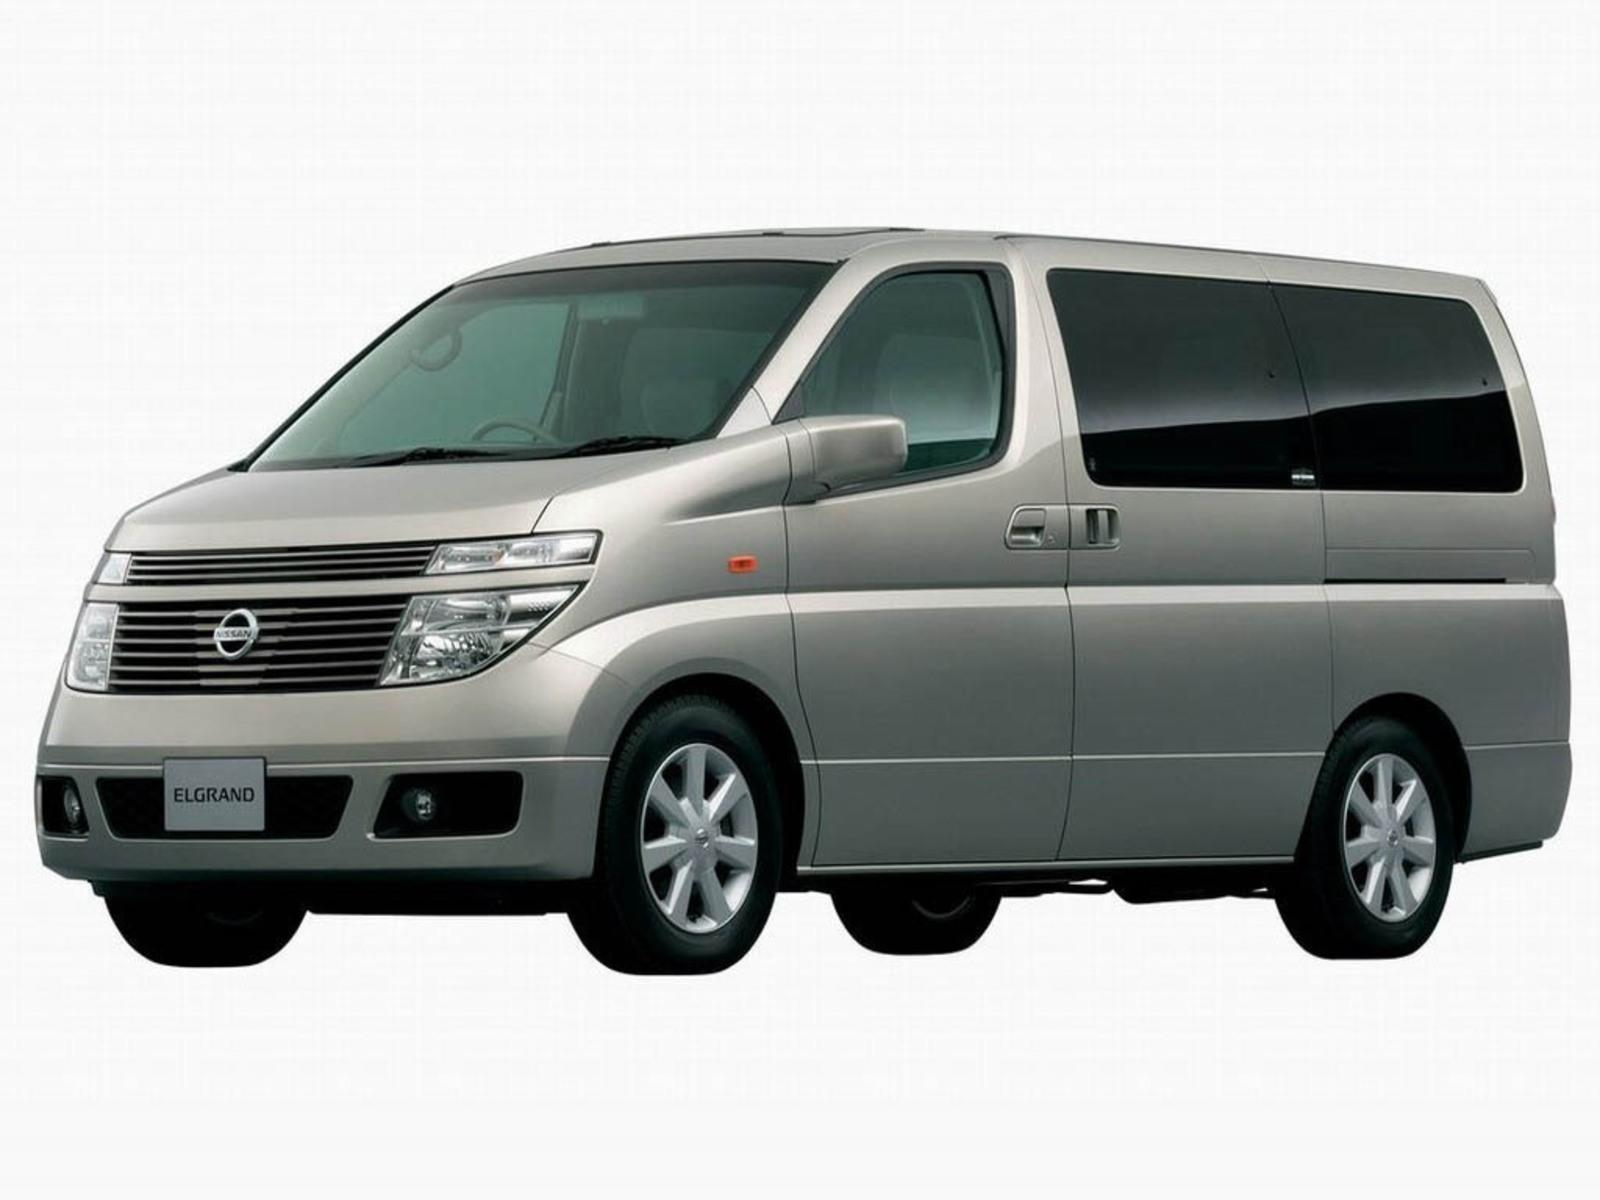 2002 Nissan Elgrand Review - Top Speed